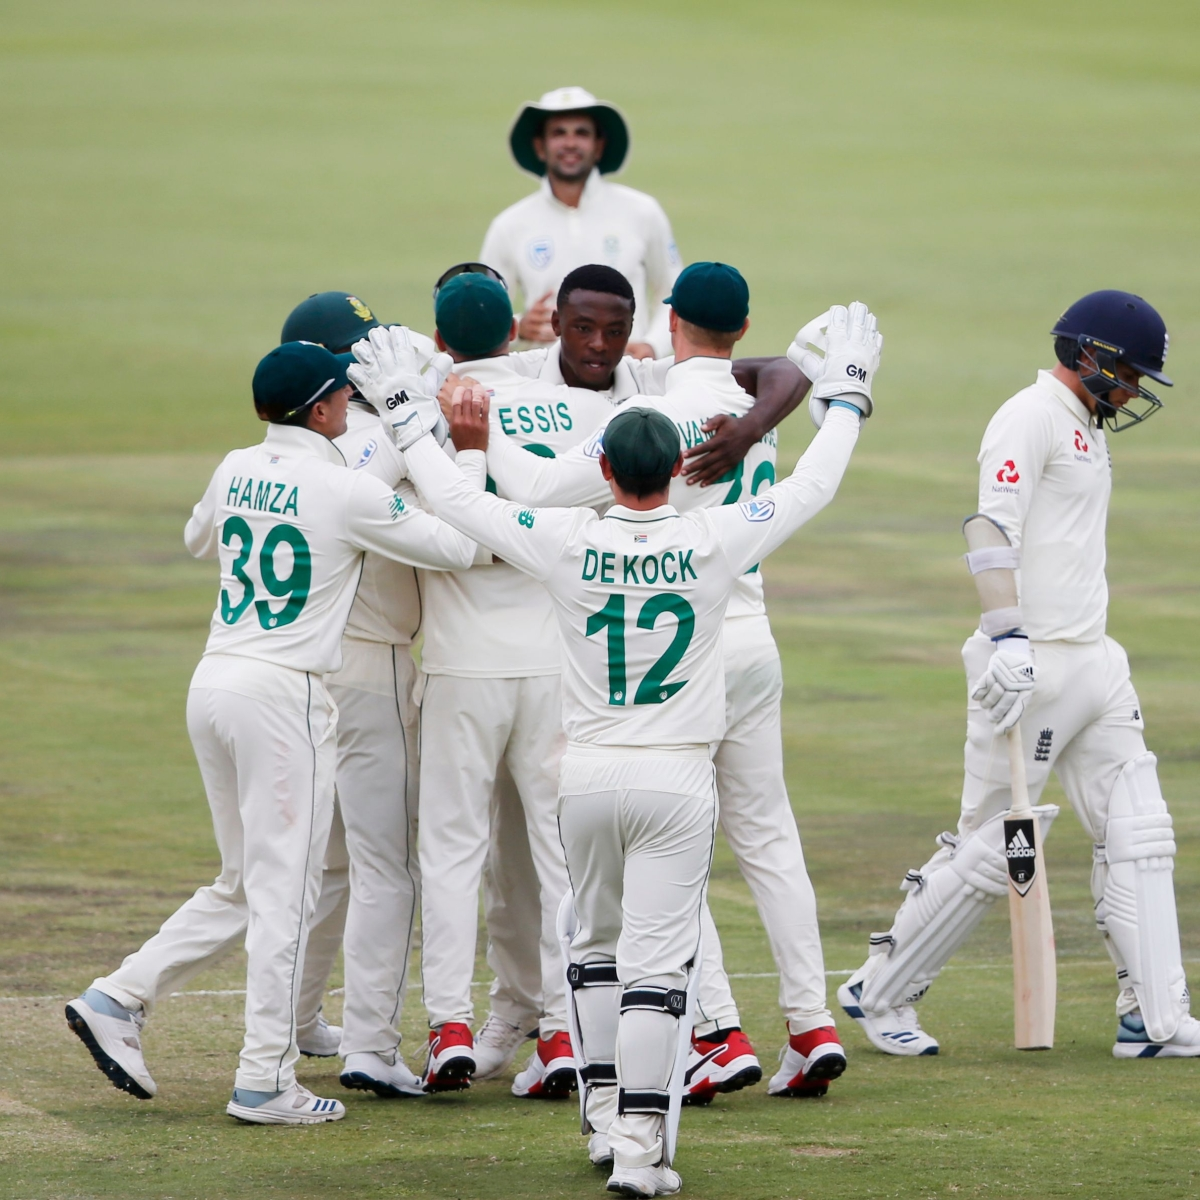 Rabada, Nortje shines as South Africa thumps with 107-run victory over England